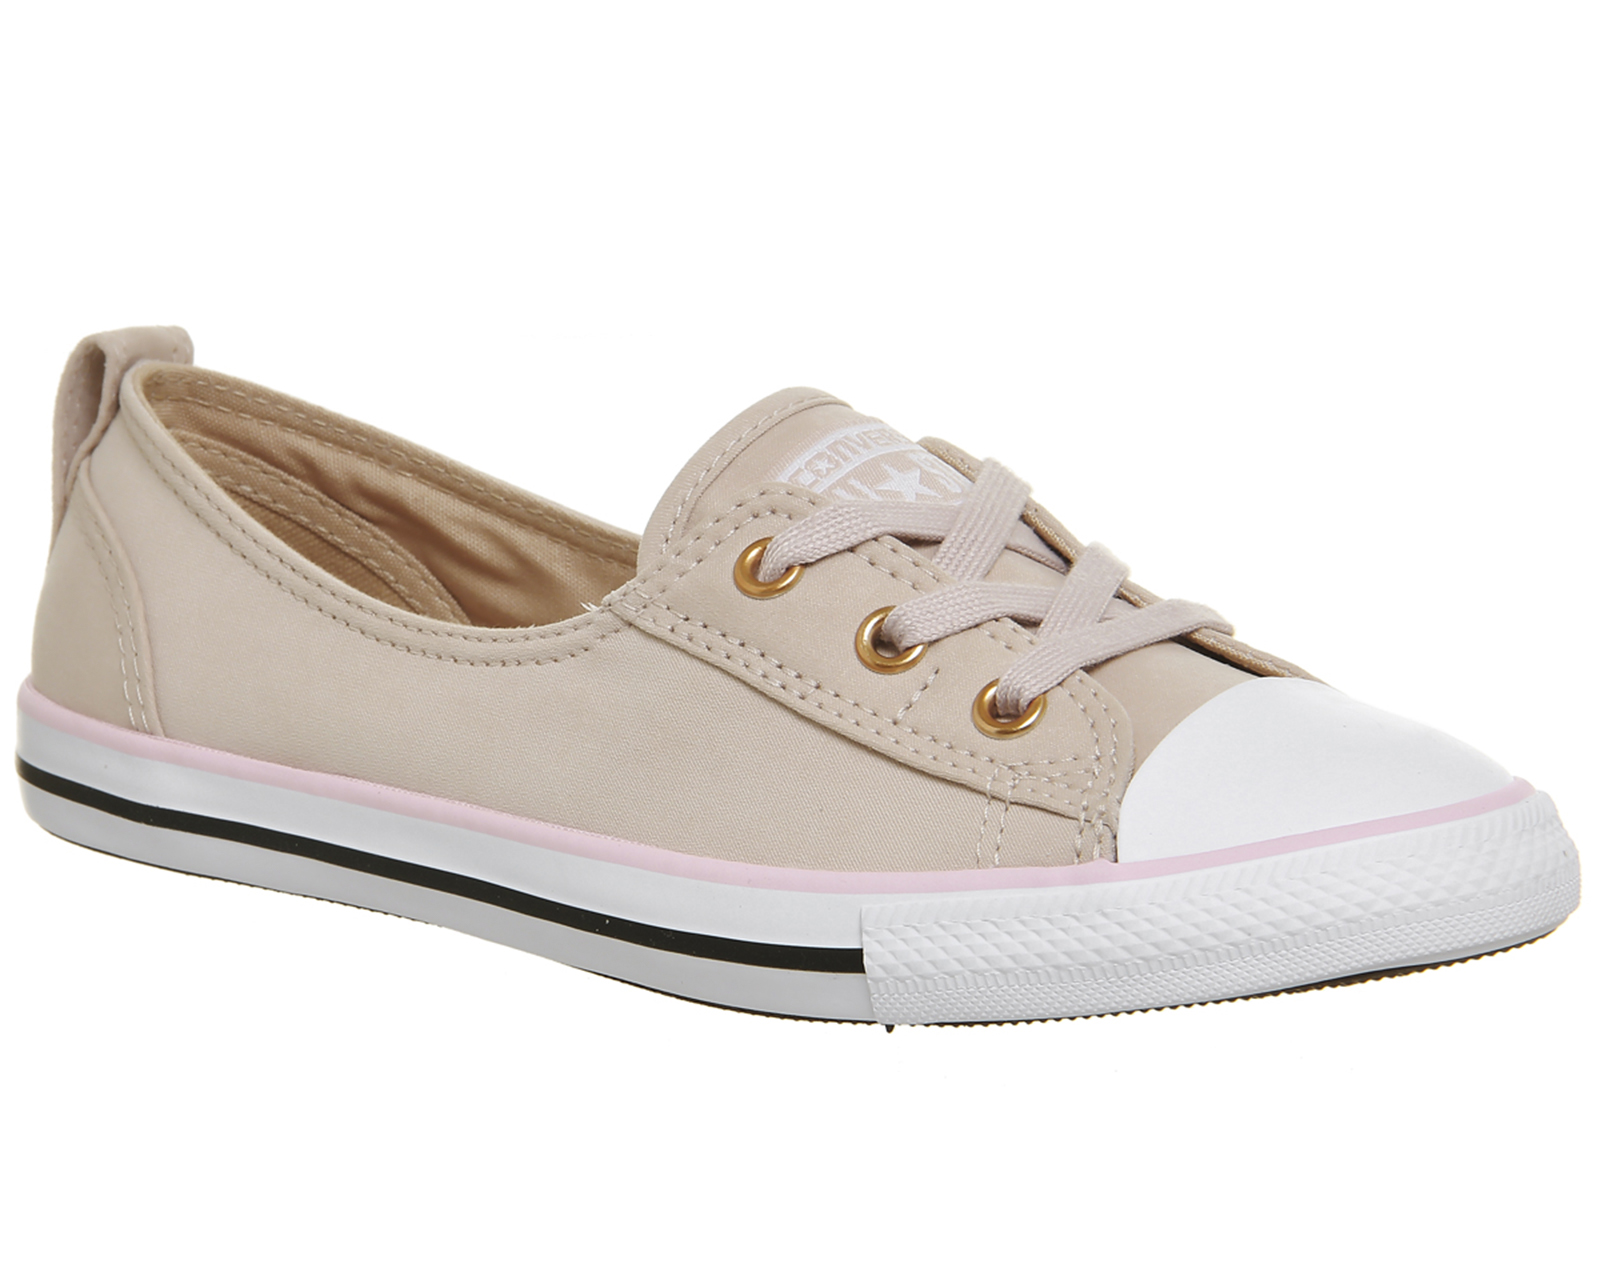 1ba16603053 Sentinel Womens Converse Ctas Ballet Lace Trainers PARTICLE BEIGE CHERRY  BLOSSOM EXCLUSIV